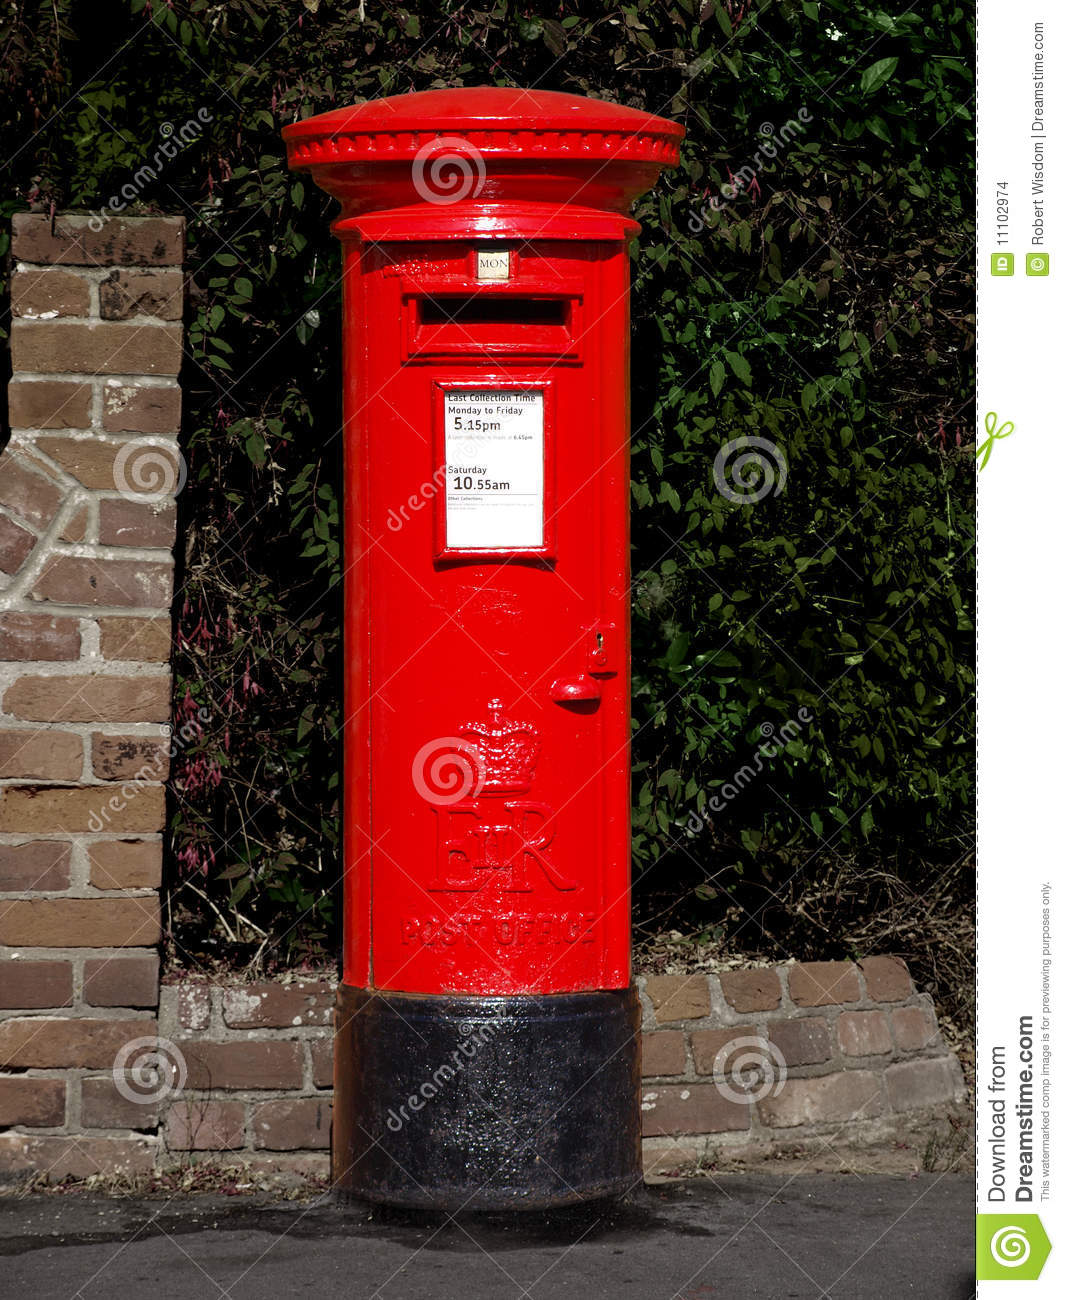 Old Fashioned Post Office Box